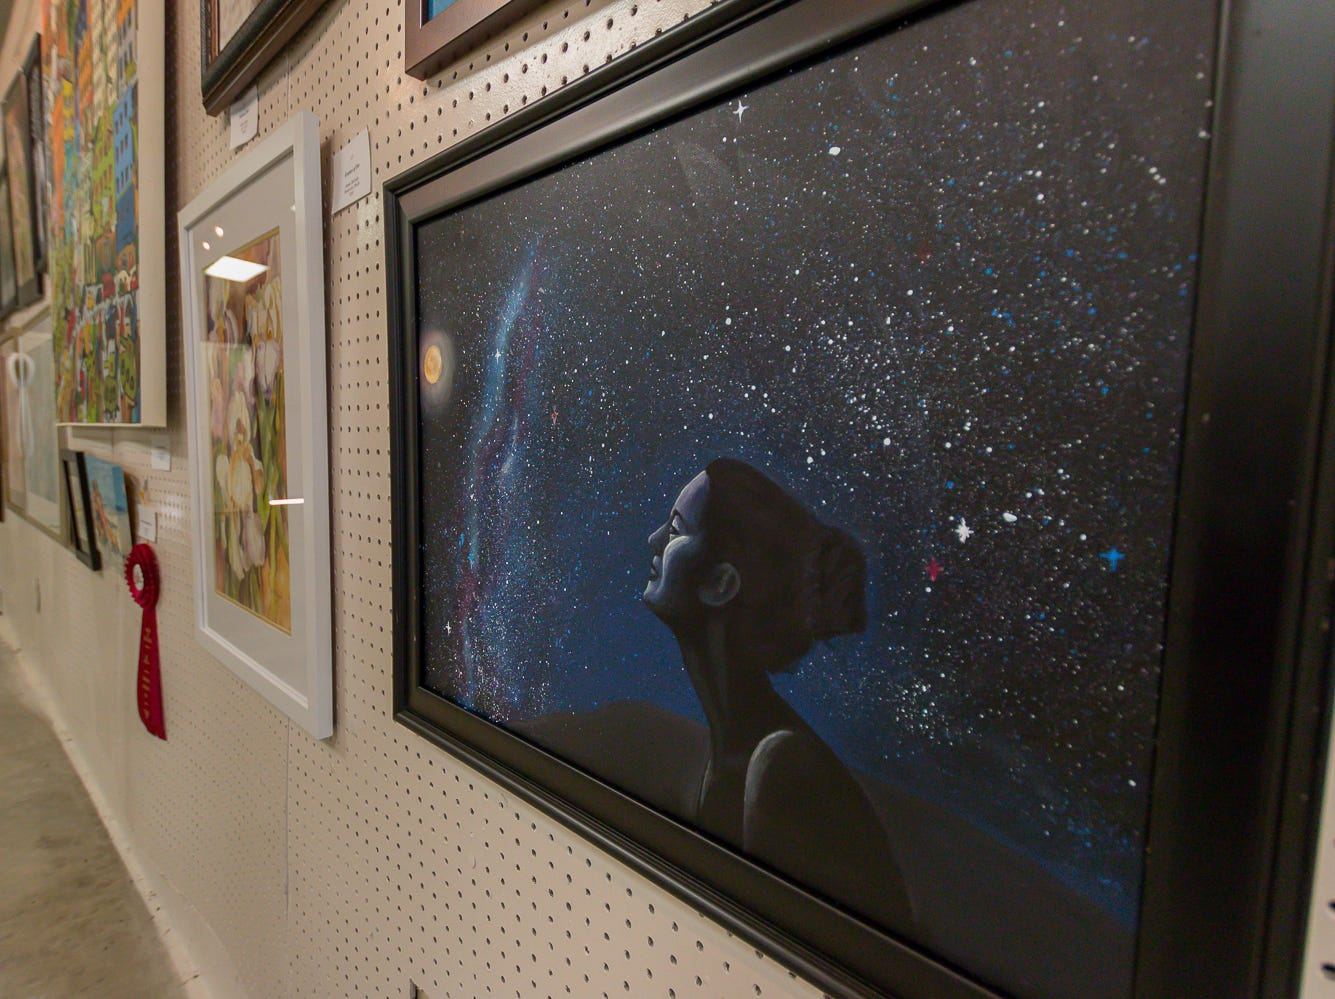 """Milky Way Maiden,"" an 18""x24"" mixed media piece by Elizabeth Grace Olsen, is among over one hundred pieces on display in the Fine Arts Exhibition at the Pensacola Interstate Fair on Wednesday, October 17, 2018."